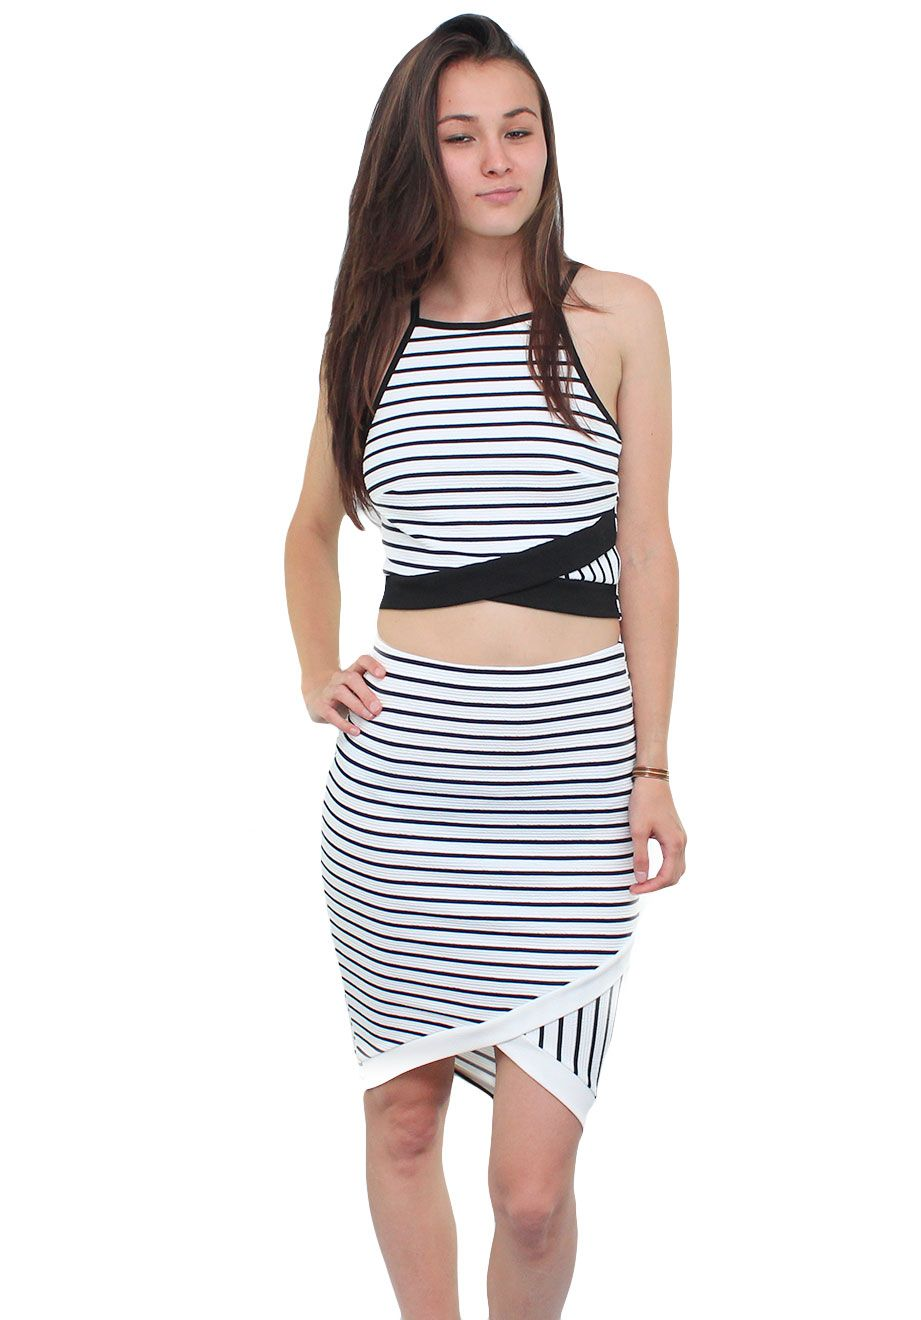 http://www.goodstuffapparel.com/ wholesale clothing, wholesale ...